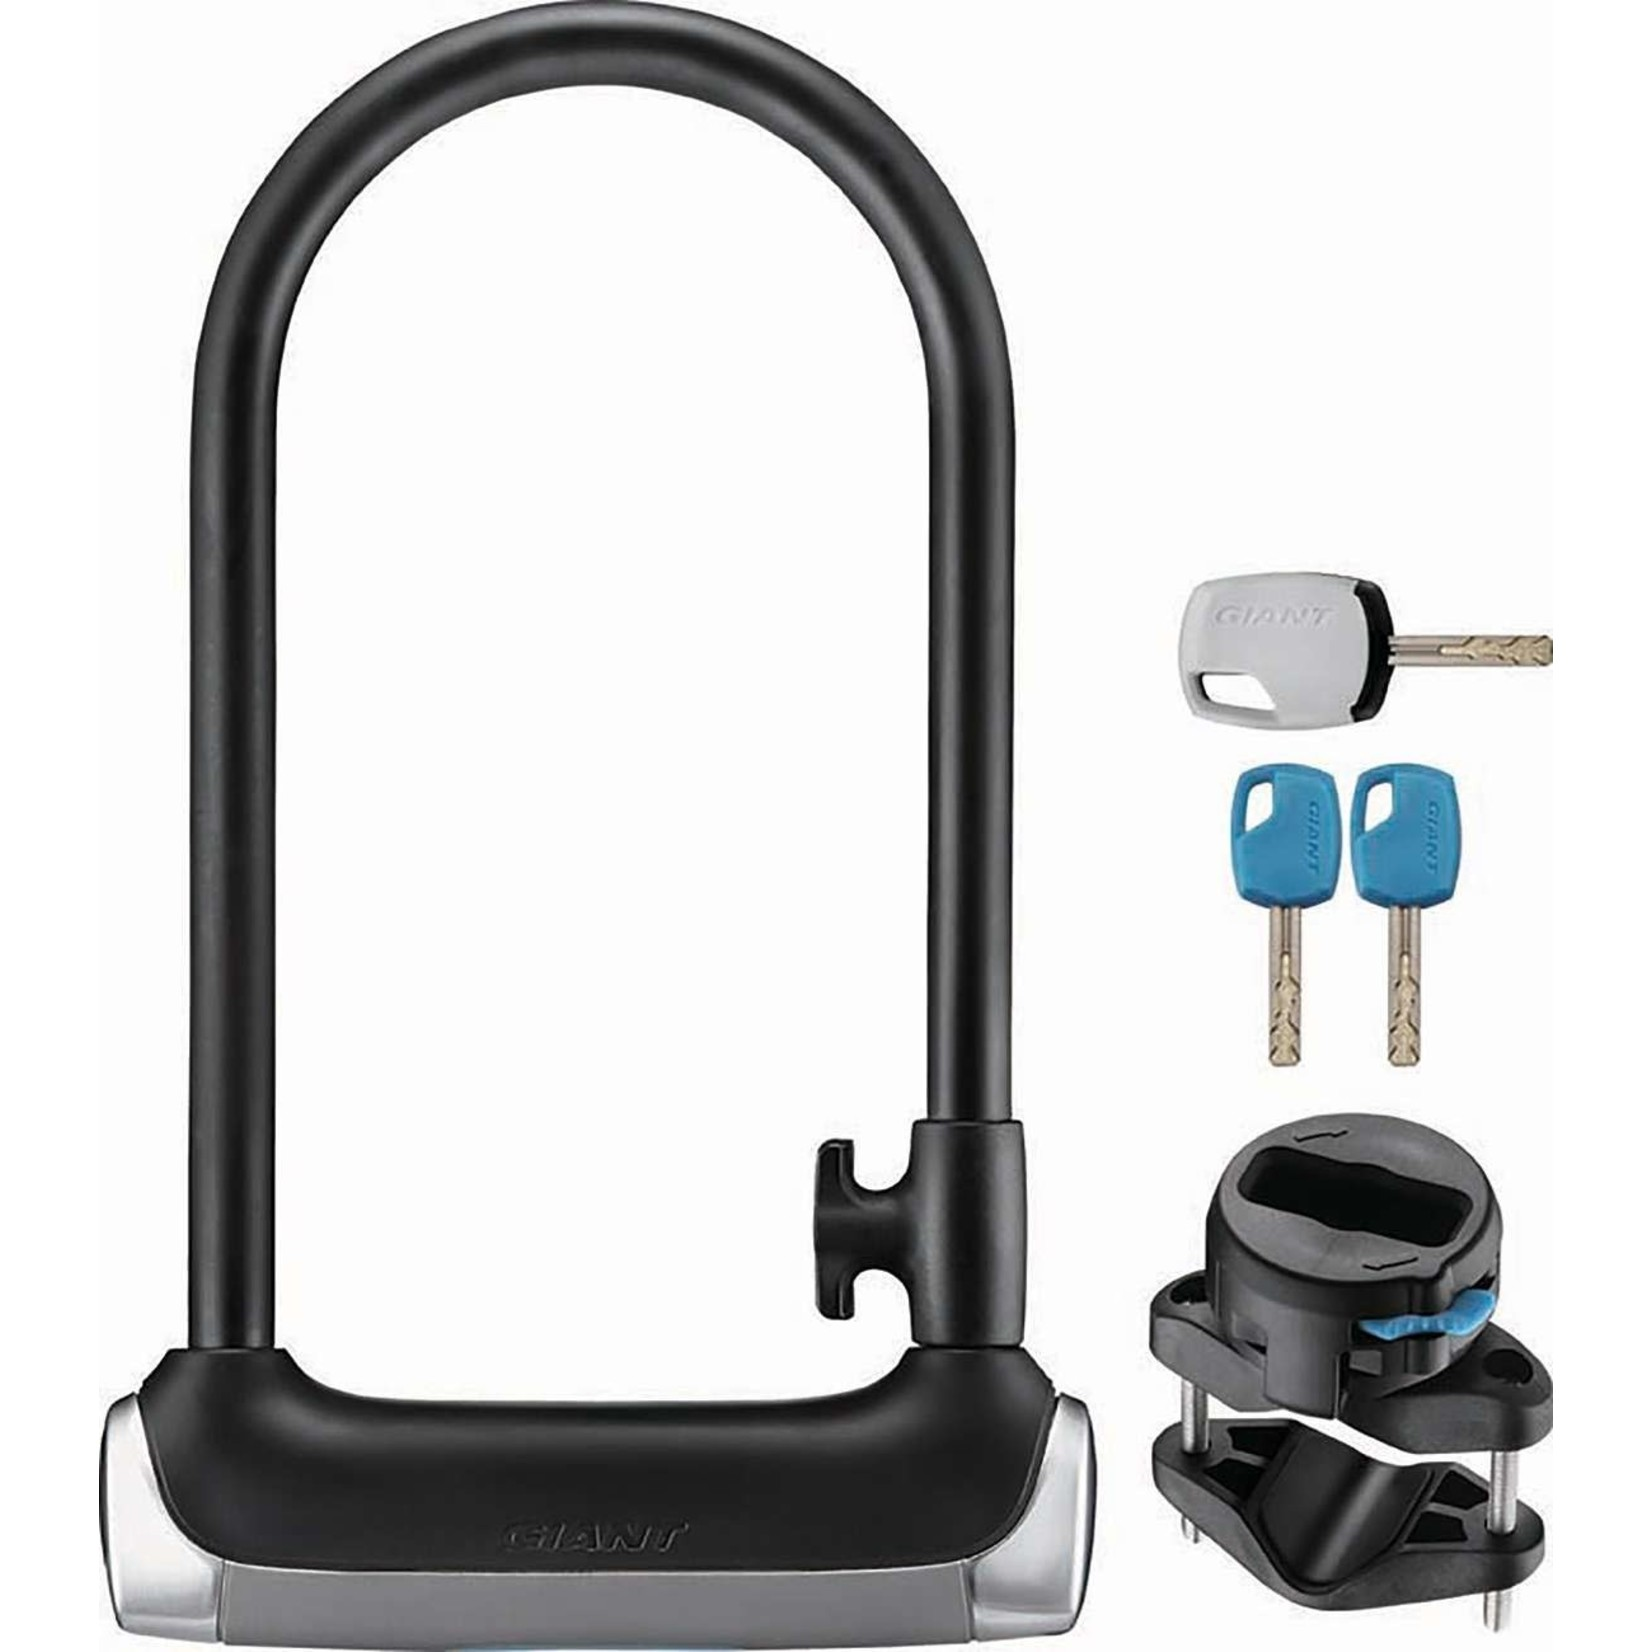 Giant Surelock protector 2 - Long Shackle 13mm x 292mm